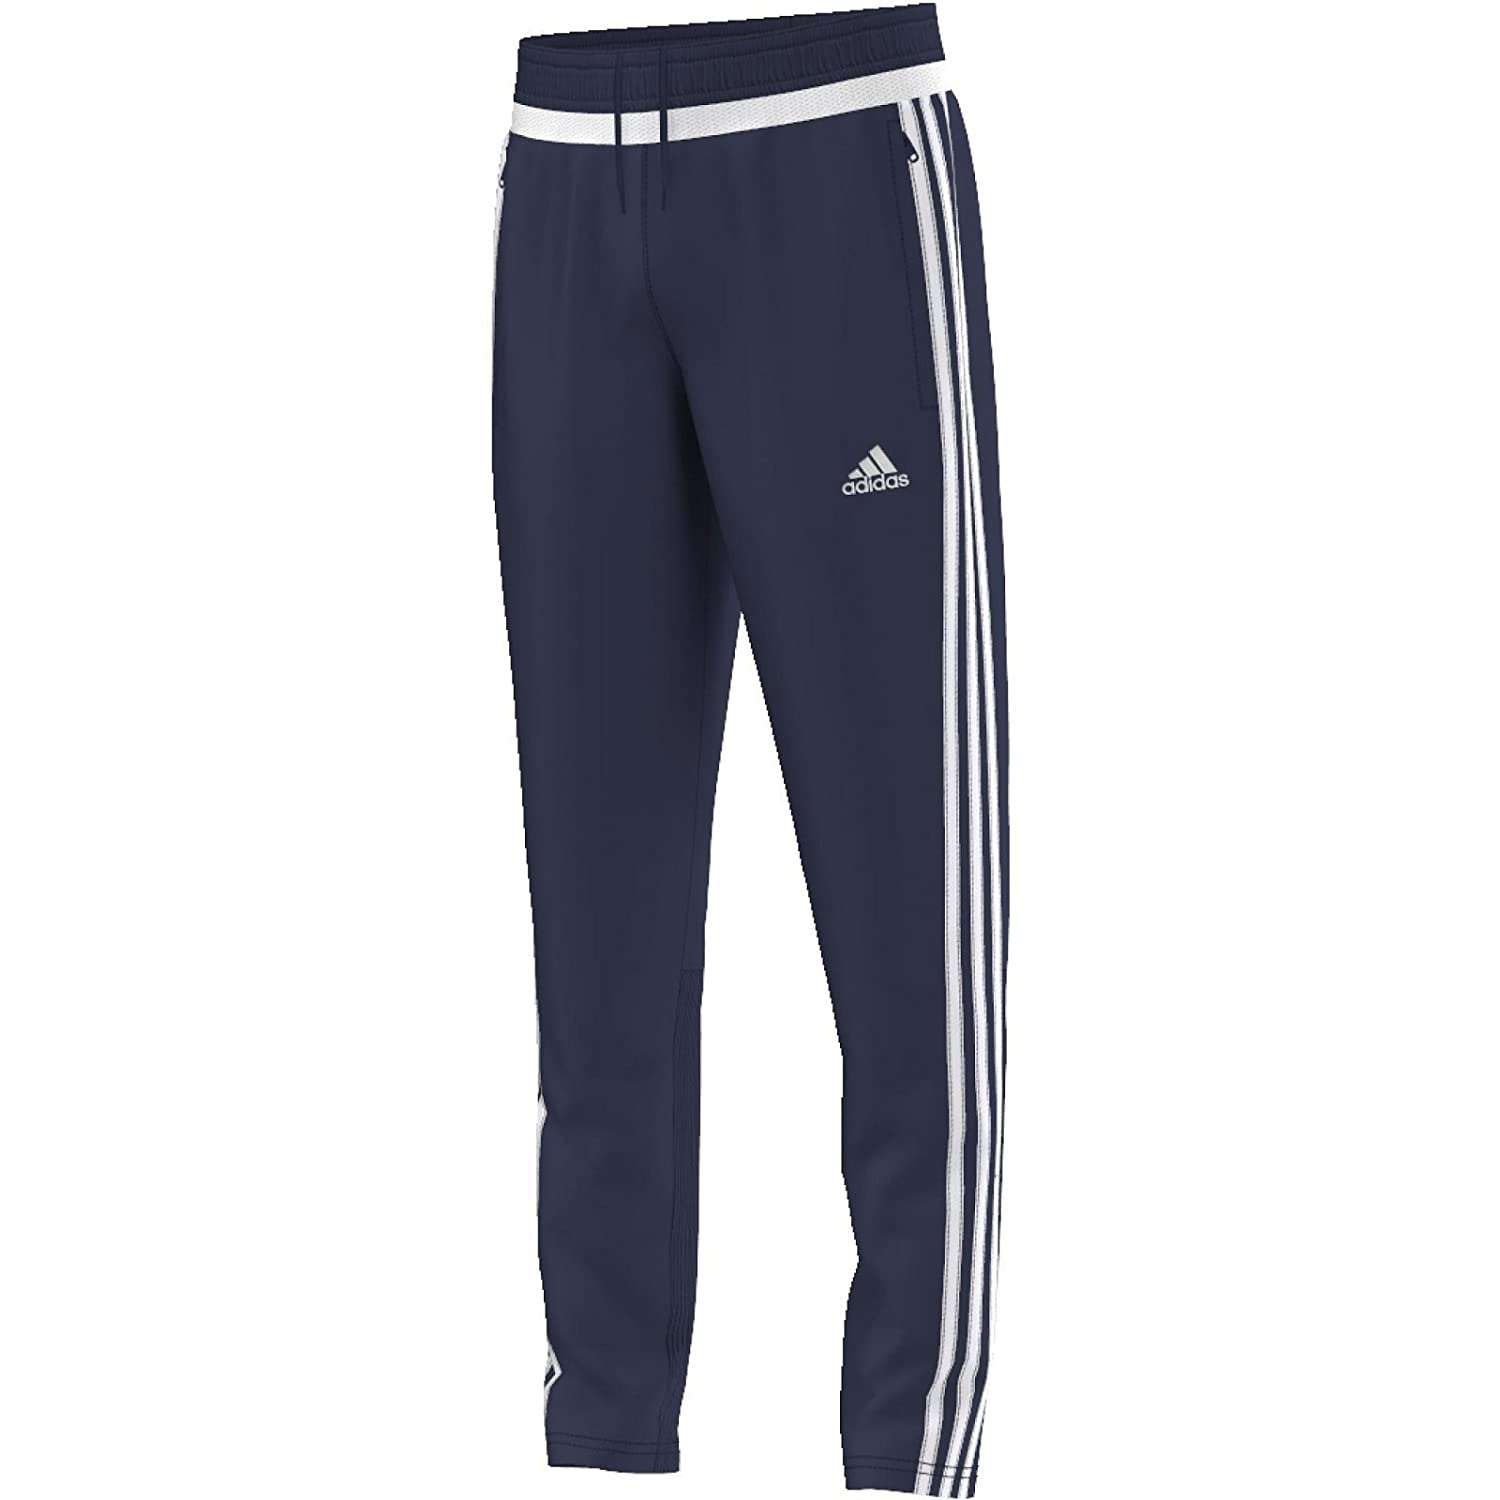 adidas Boy s Tiro 15 Pants  Amazon.co.uk  Sports   Outdoors 4e00e2f3961